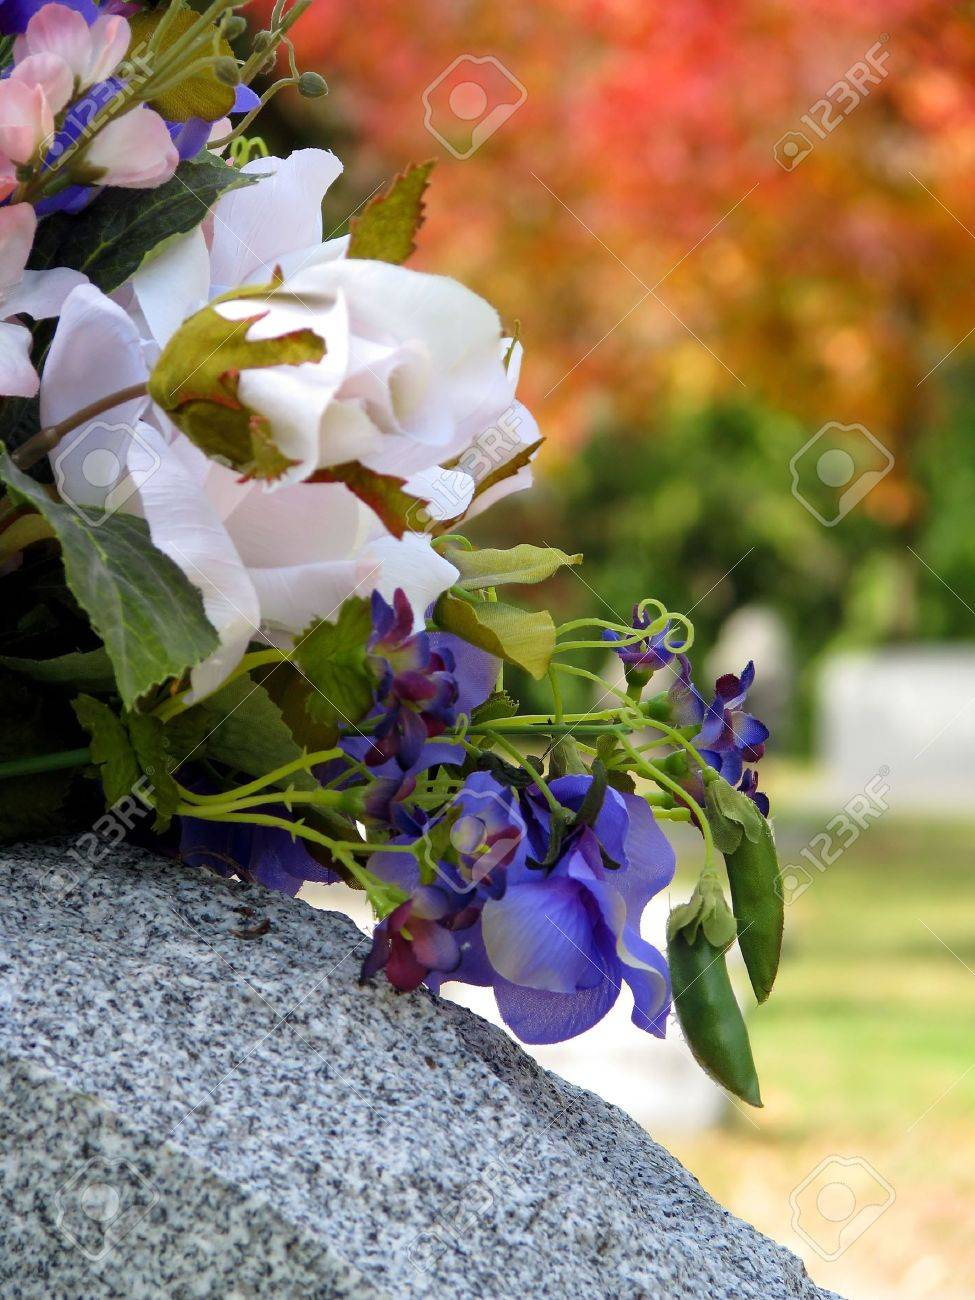 Silk flowers on a cemetery grave headstone stock photo picture and silk flowers on a cemetery grave headstone stock photo 3709290 mightylinksfo